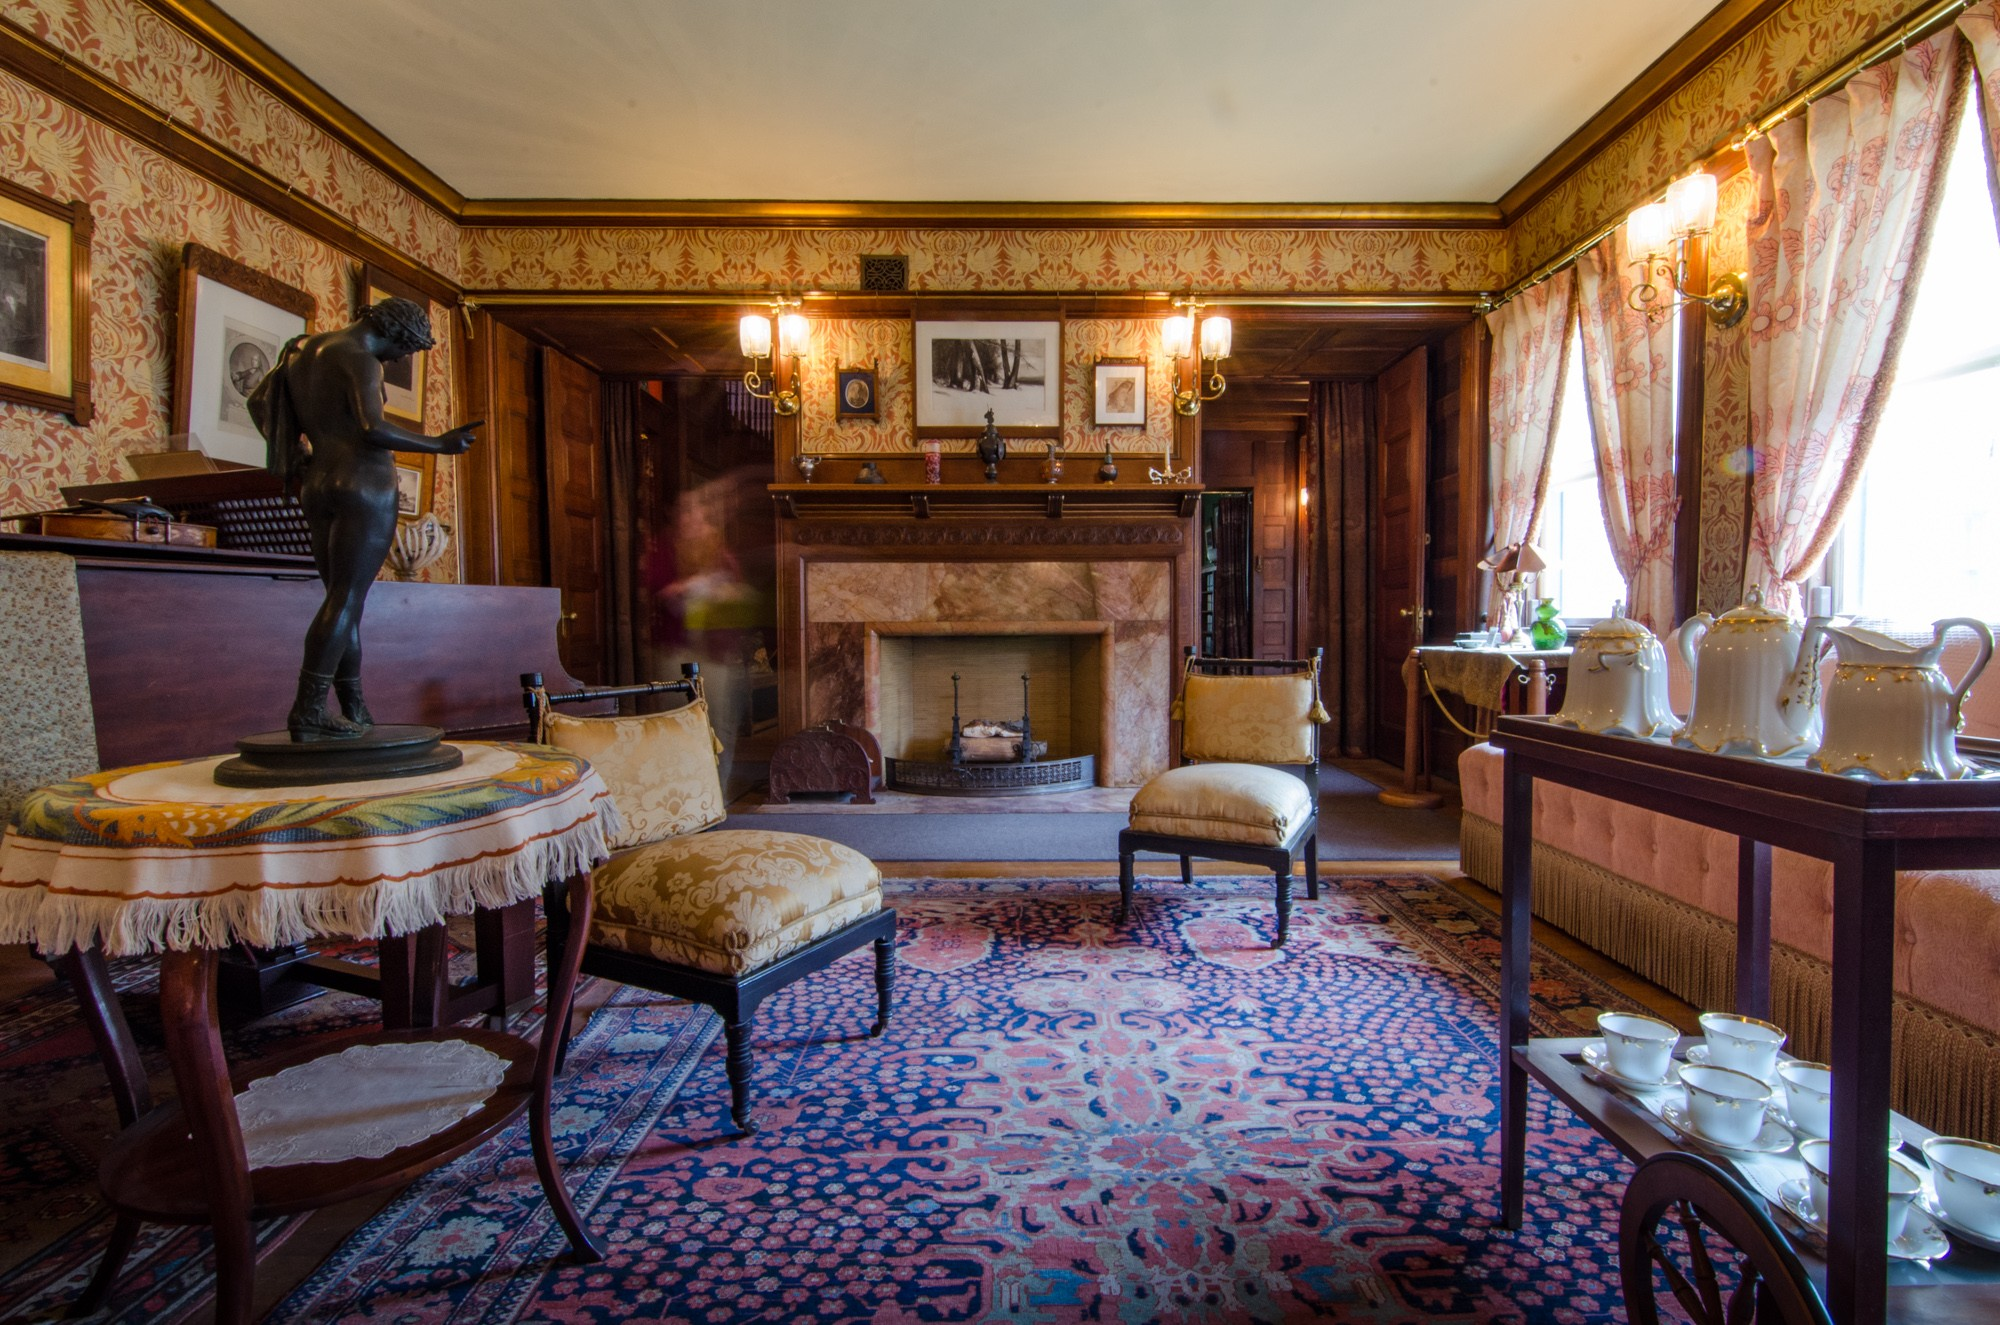 Glessner house museum sites open house chicago for Glessner house